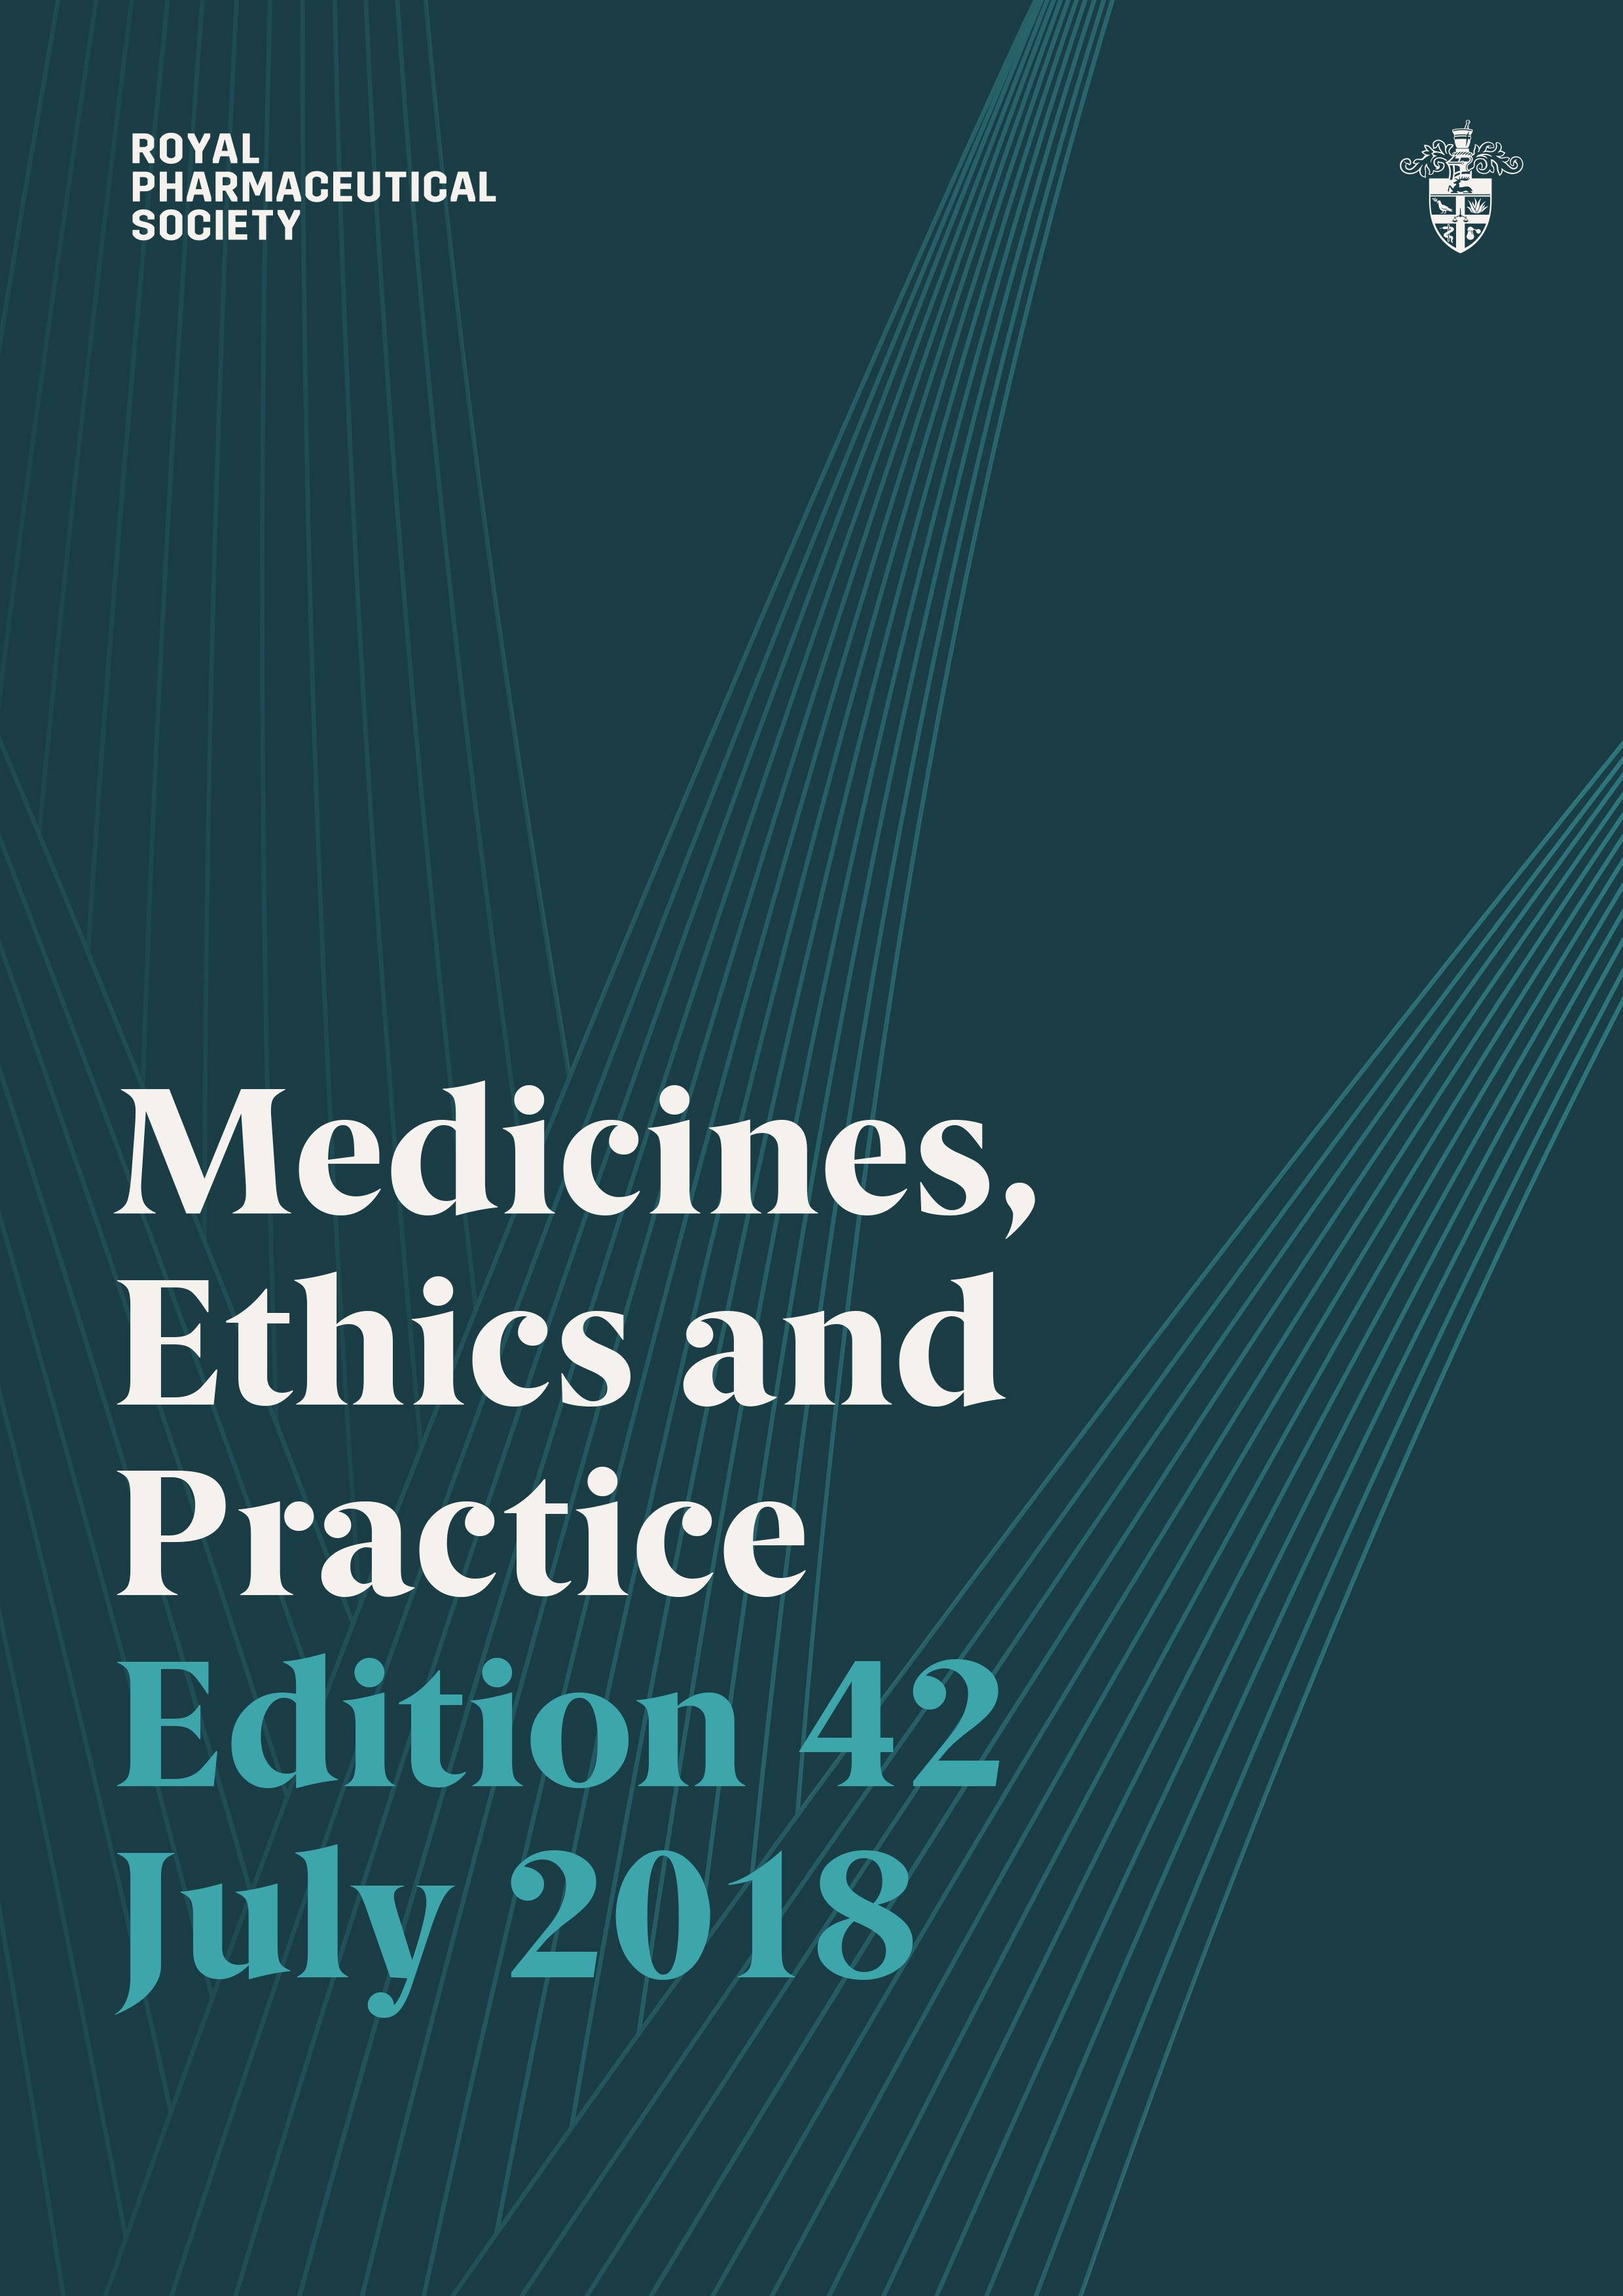 ethics and medical practice Strive for excellence in all aspects of my medical practice use only legal and ethical means in the provision of care to my patients provide patient care impartially provide no special privilege to any individual patient based on the patient's race, color, creed, sex, national origin or handicap.